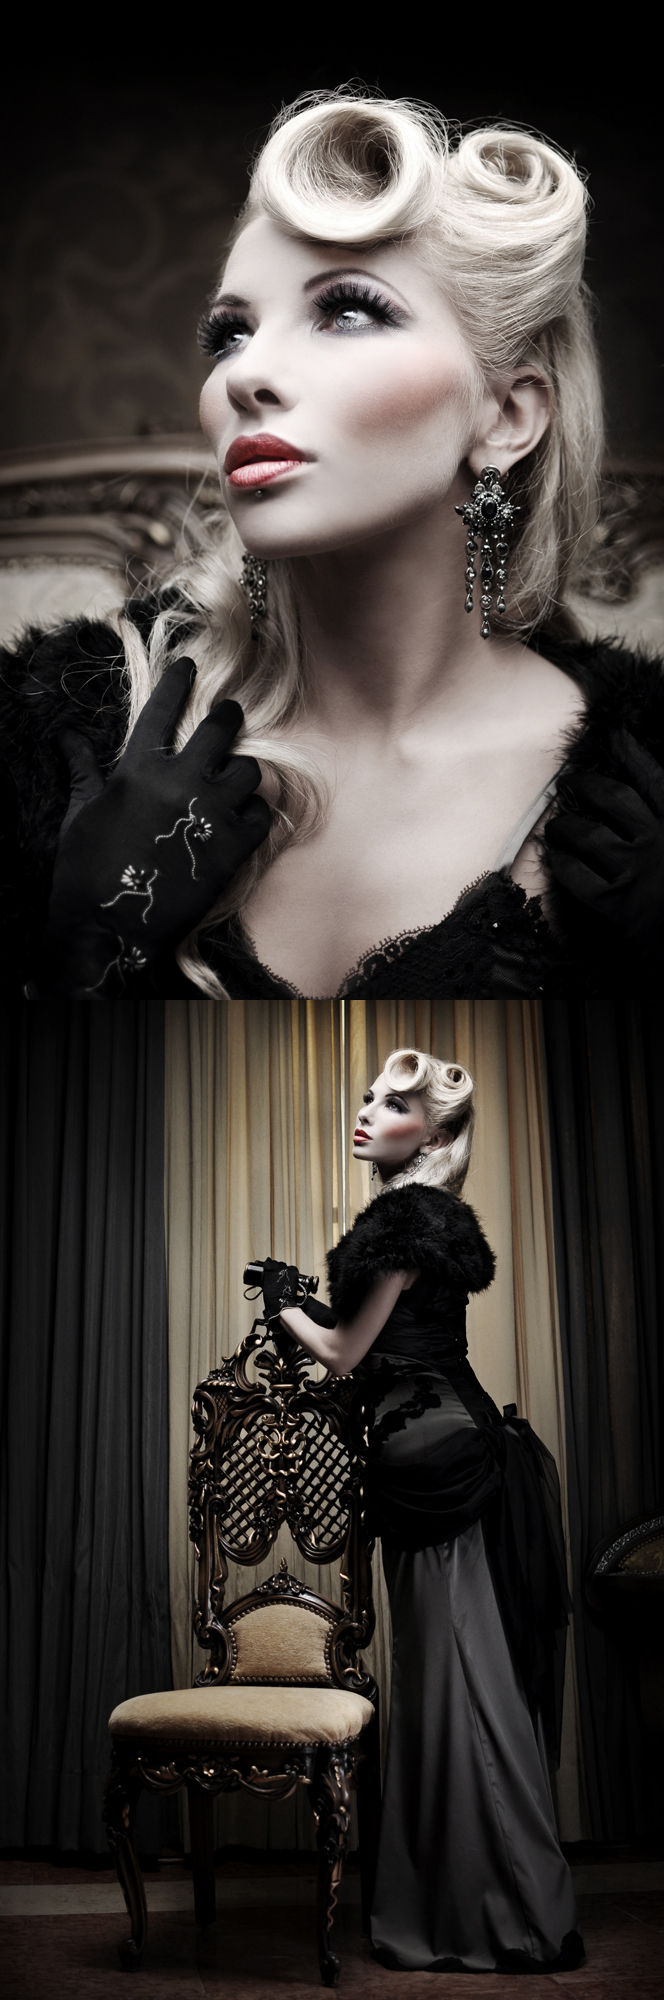 Nov 14, 2009 Photographer: Silent View, Mua: Mela Von Winter; Vecona Couture